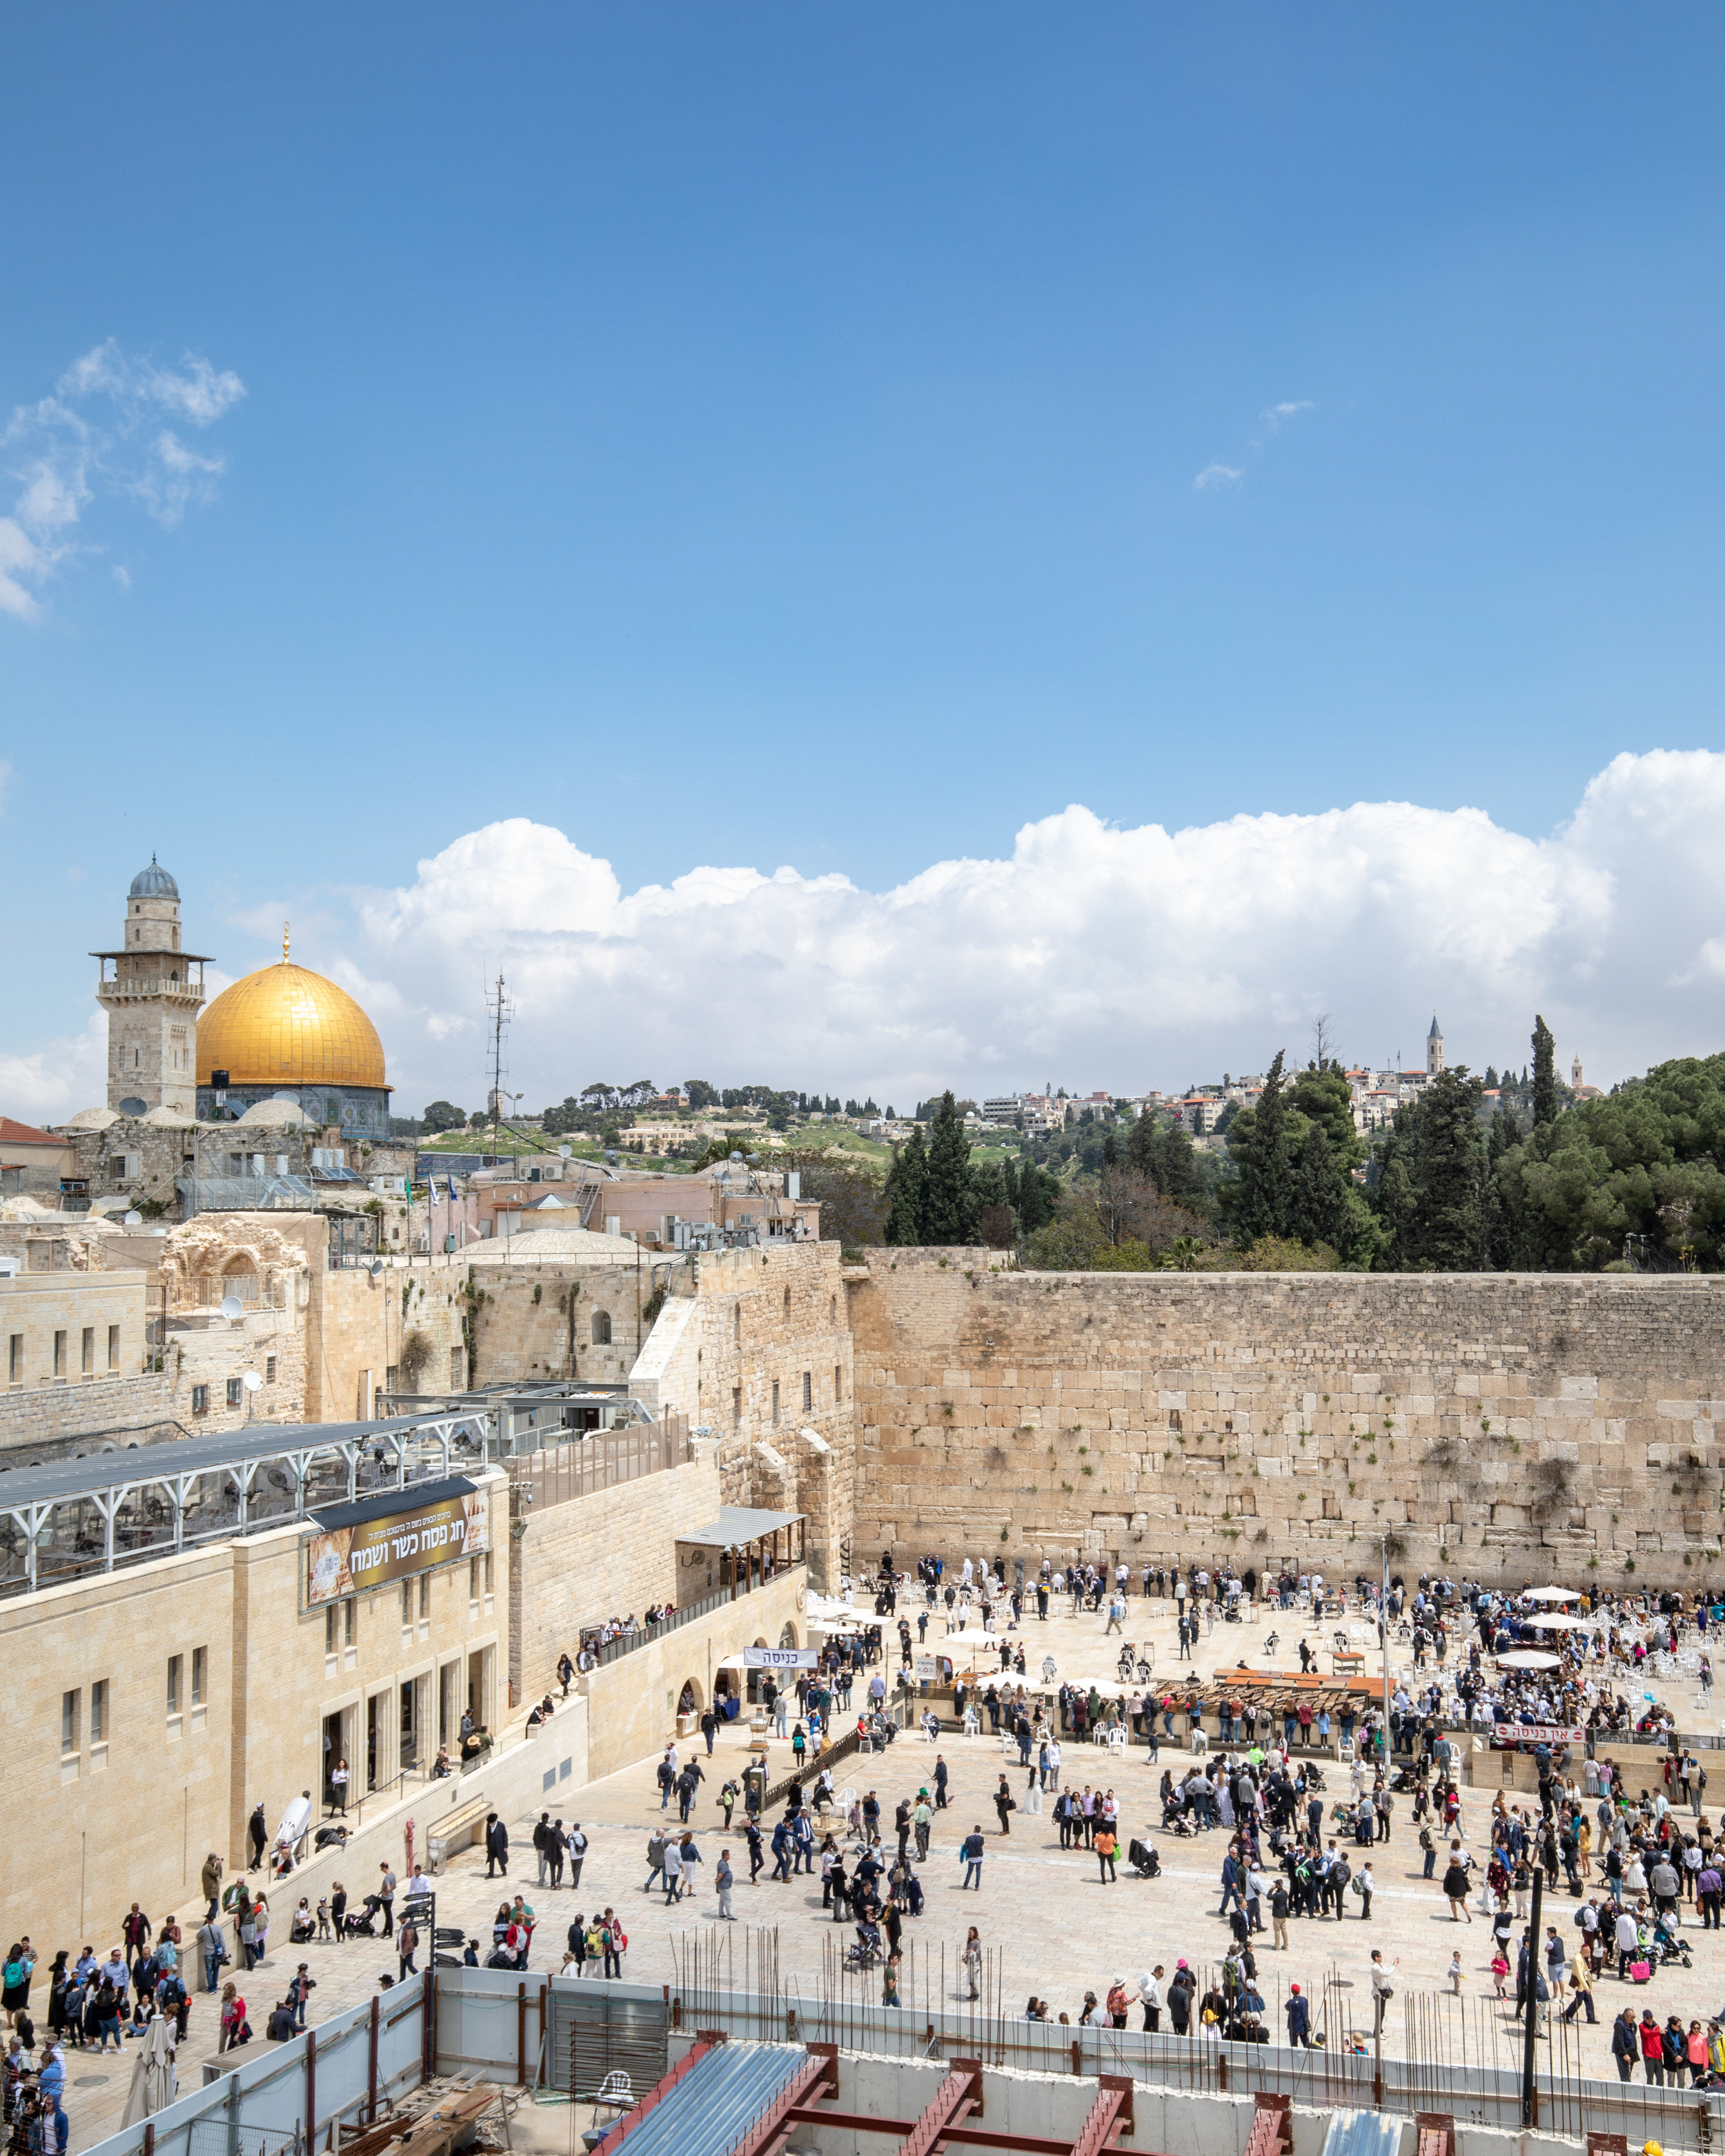 The viewpoint of the Western Wall